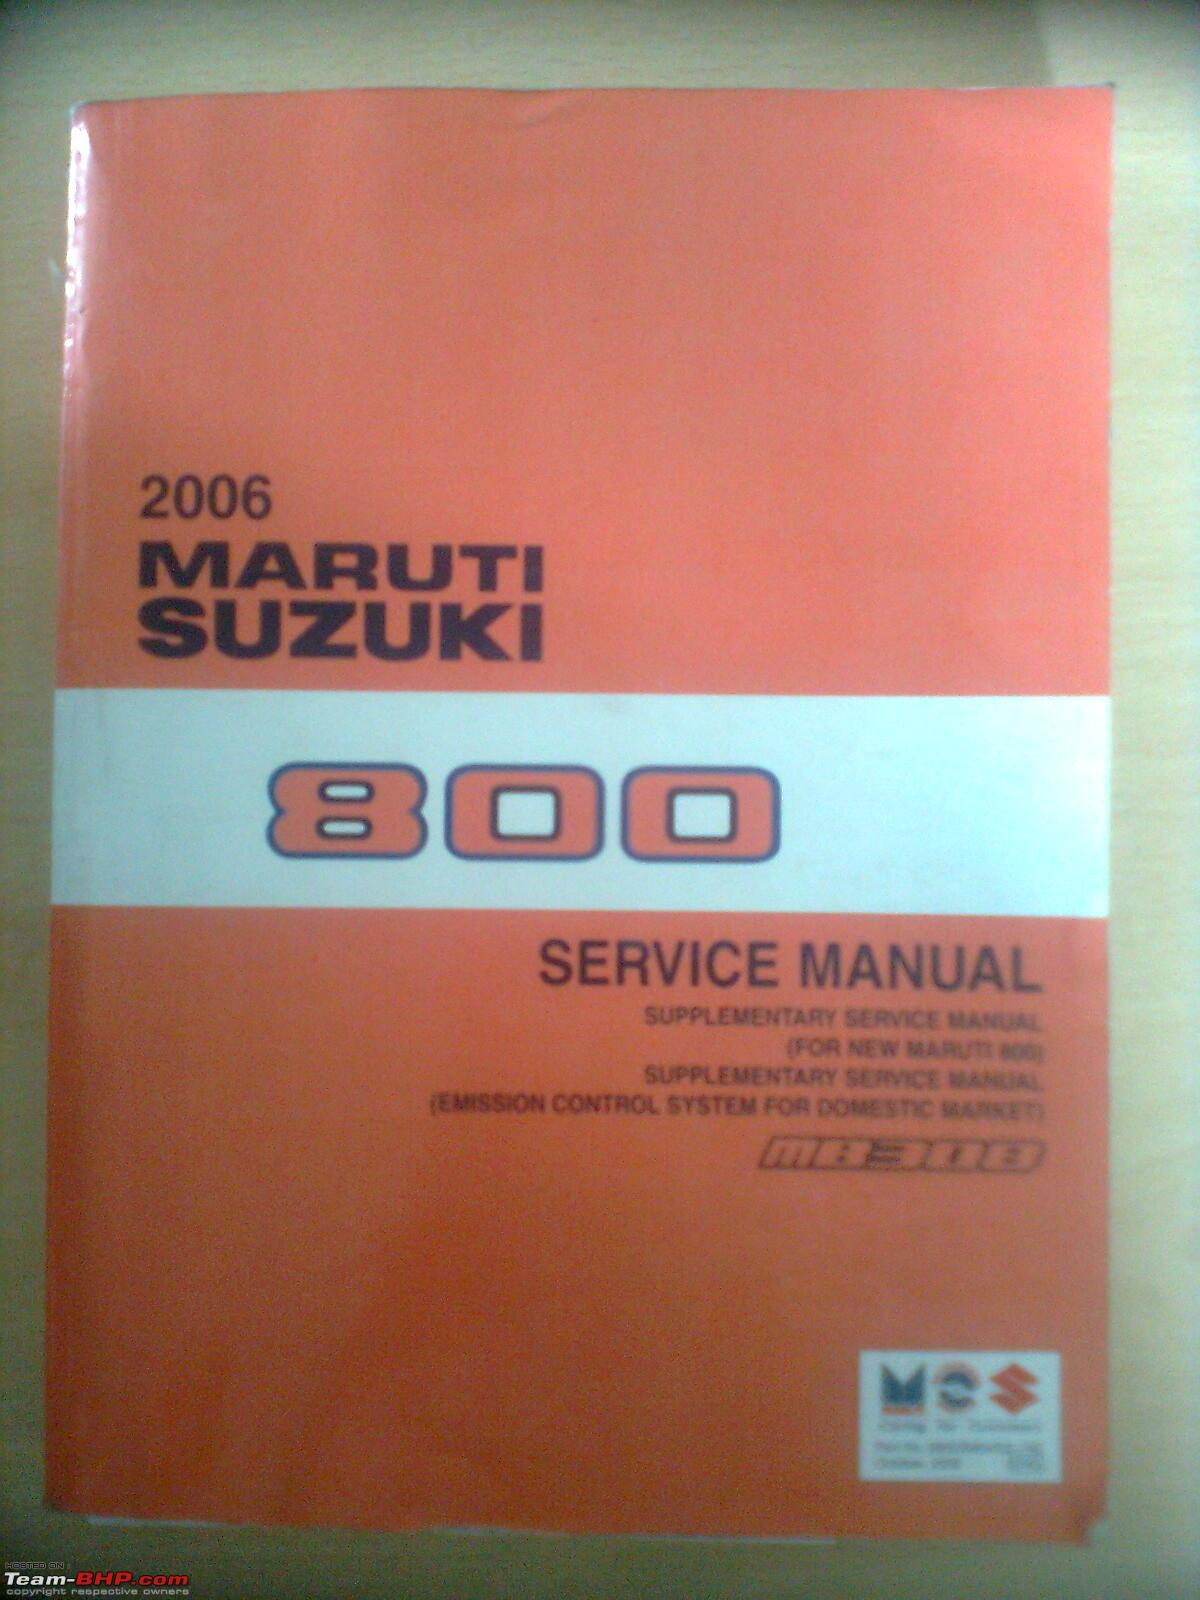 alto lxi service manual ebook rh alto lxi service manual ebook tempower us maruti zen service manual pdf maruti zen repair manual